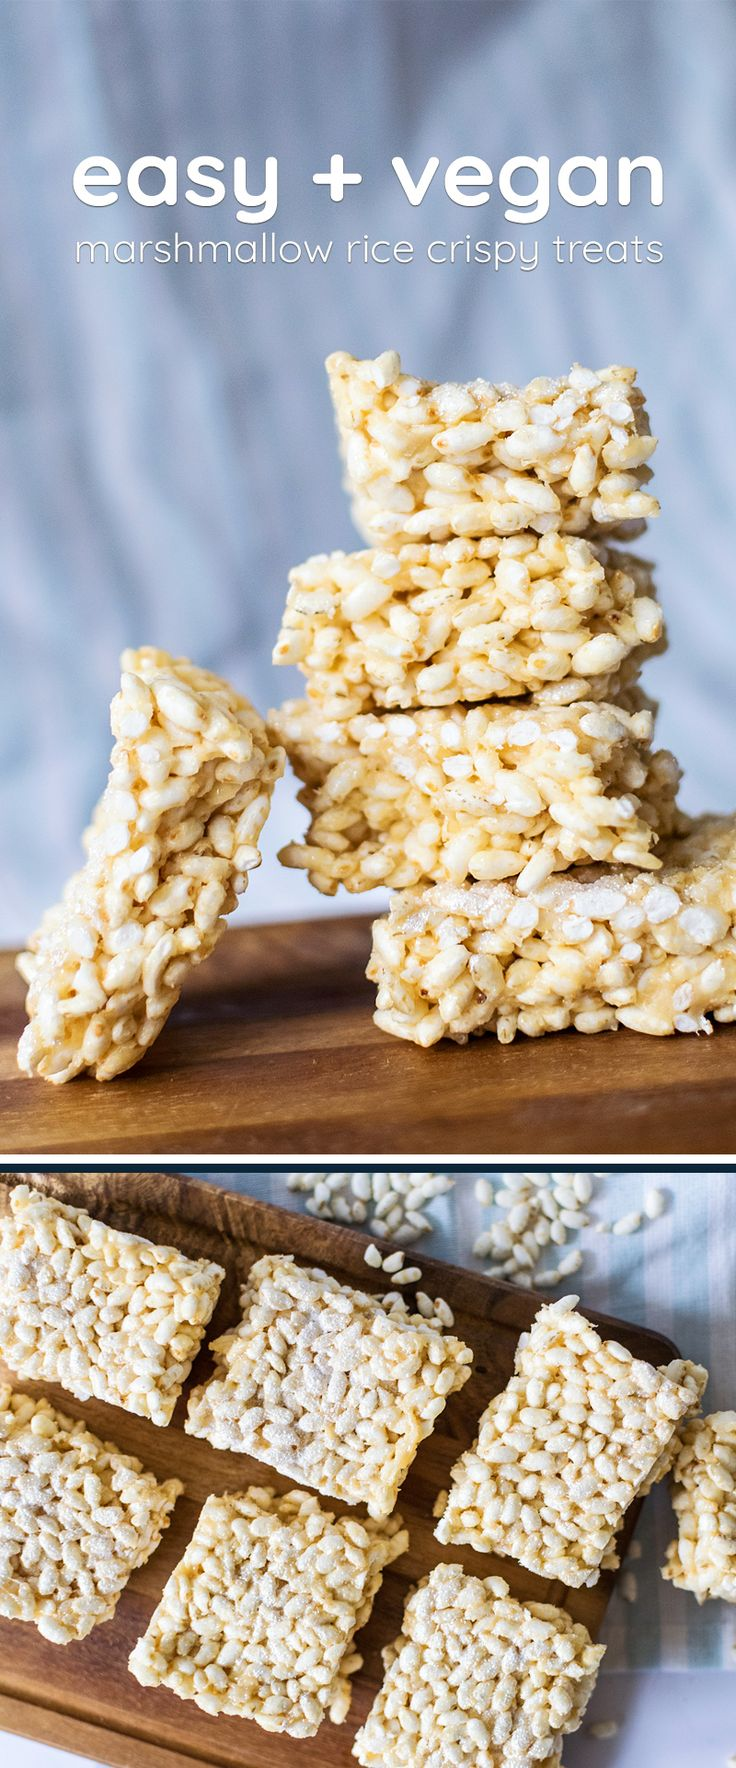 looking for some vegan mashmallow crispy treats? they're perfect to make with kids and ready in next to no time!